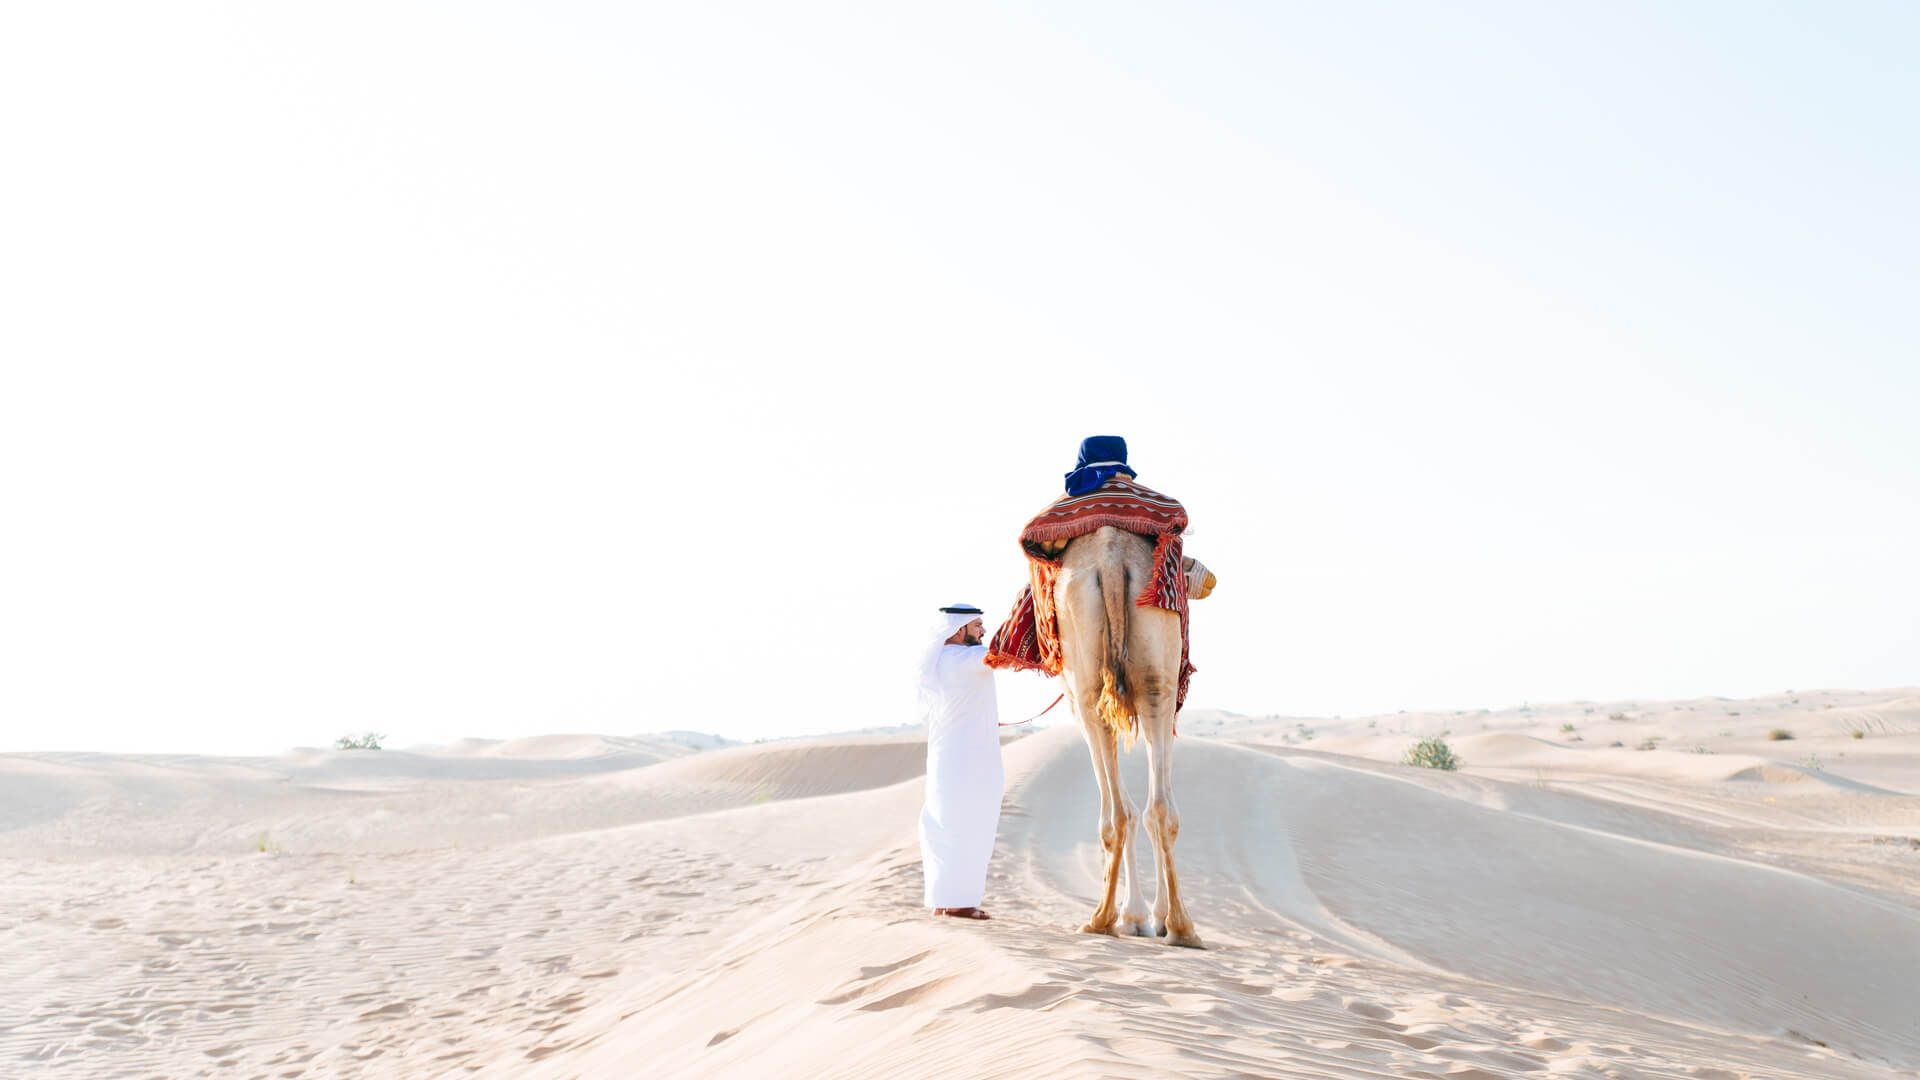 Arabian man with traditional clothes riding his camel